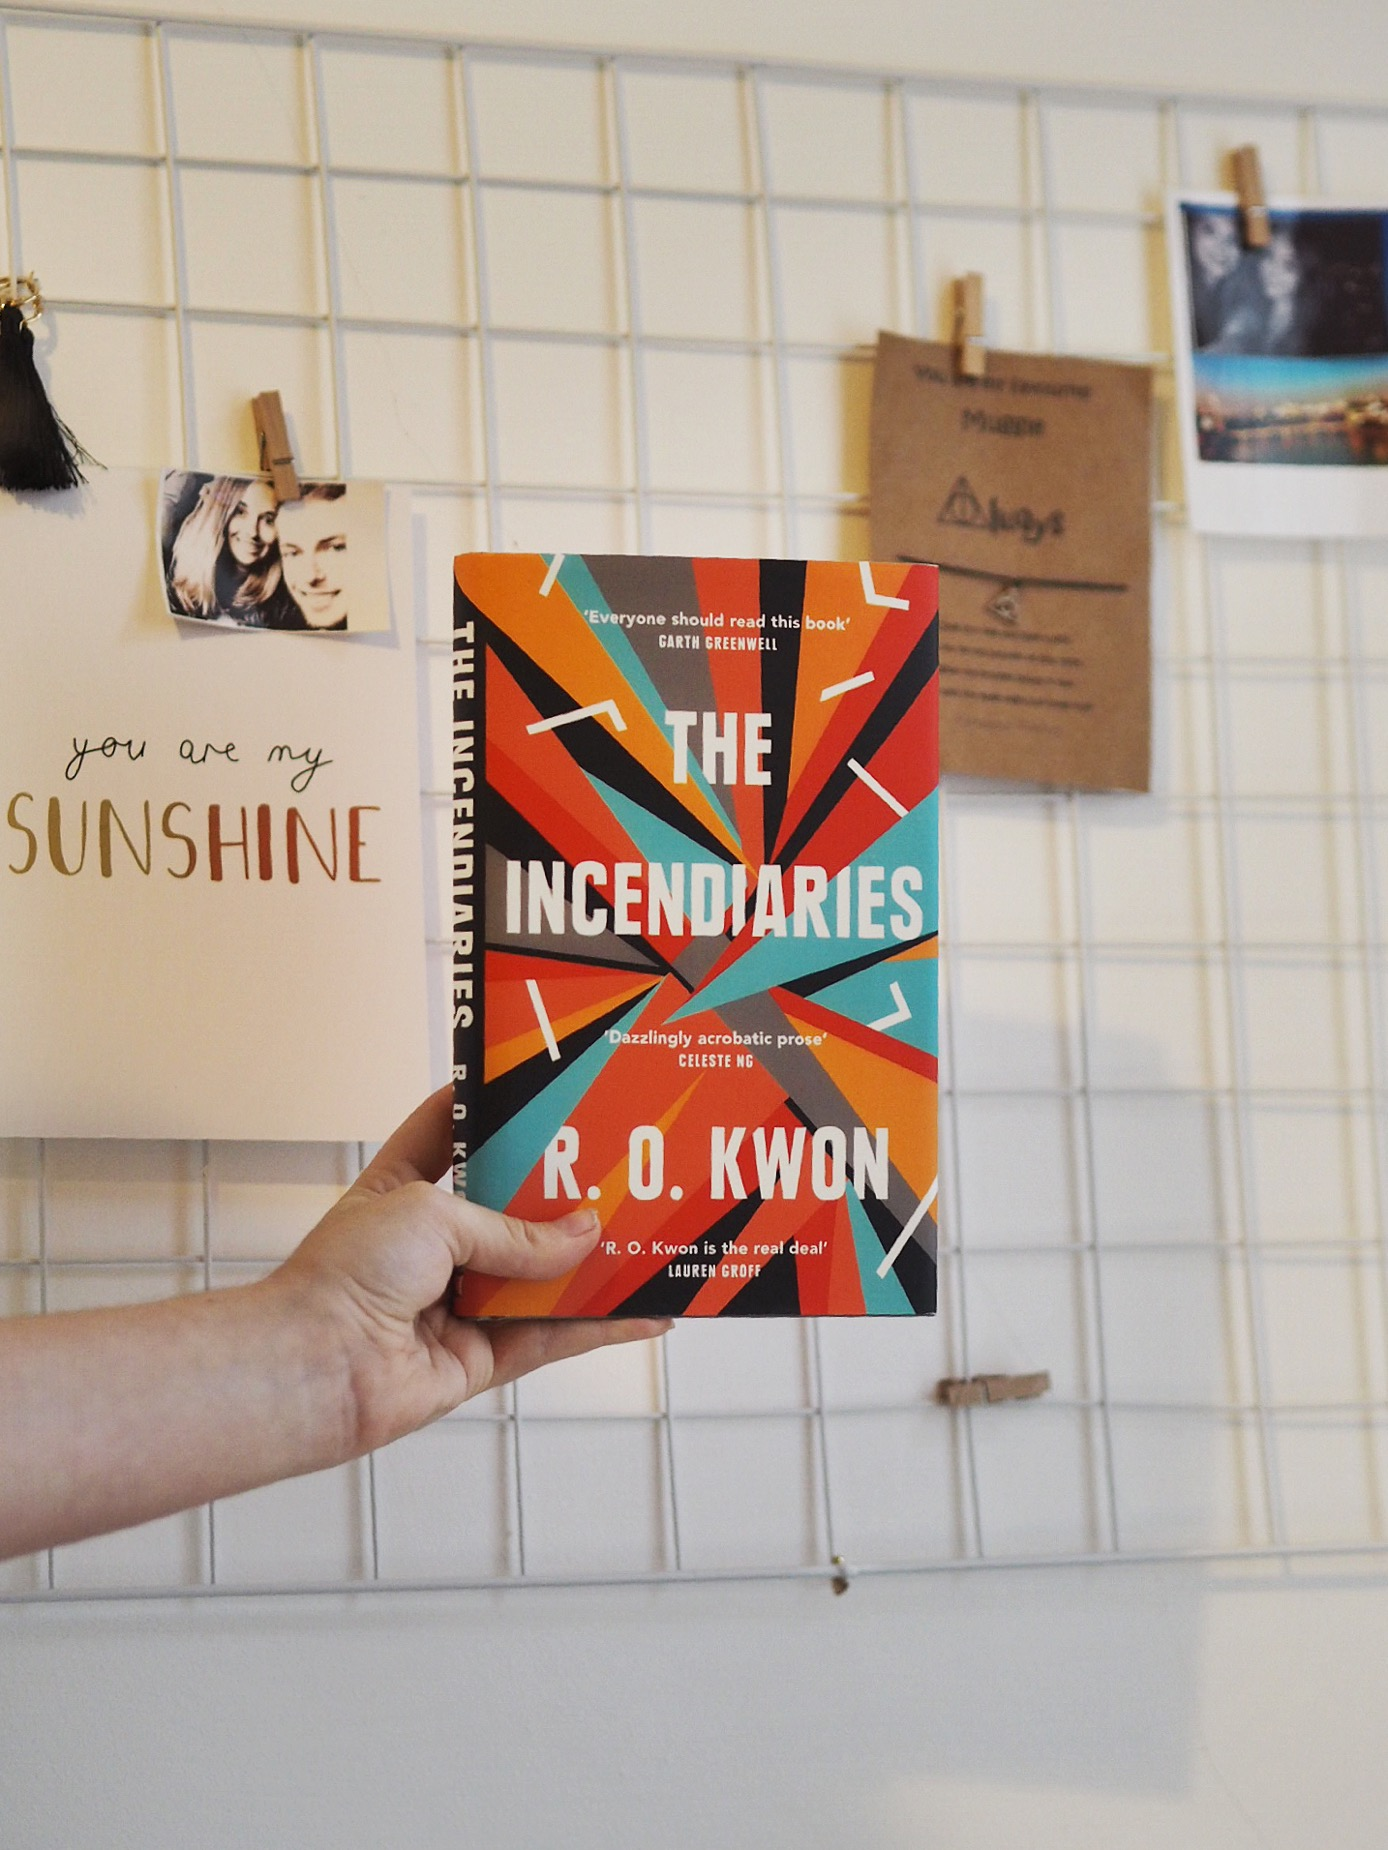 The Incendiaries | Hollie in Wanderlust | Book Review